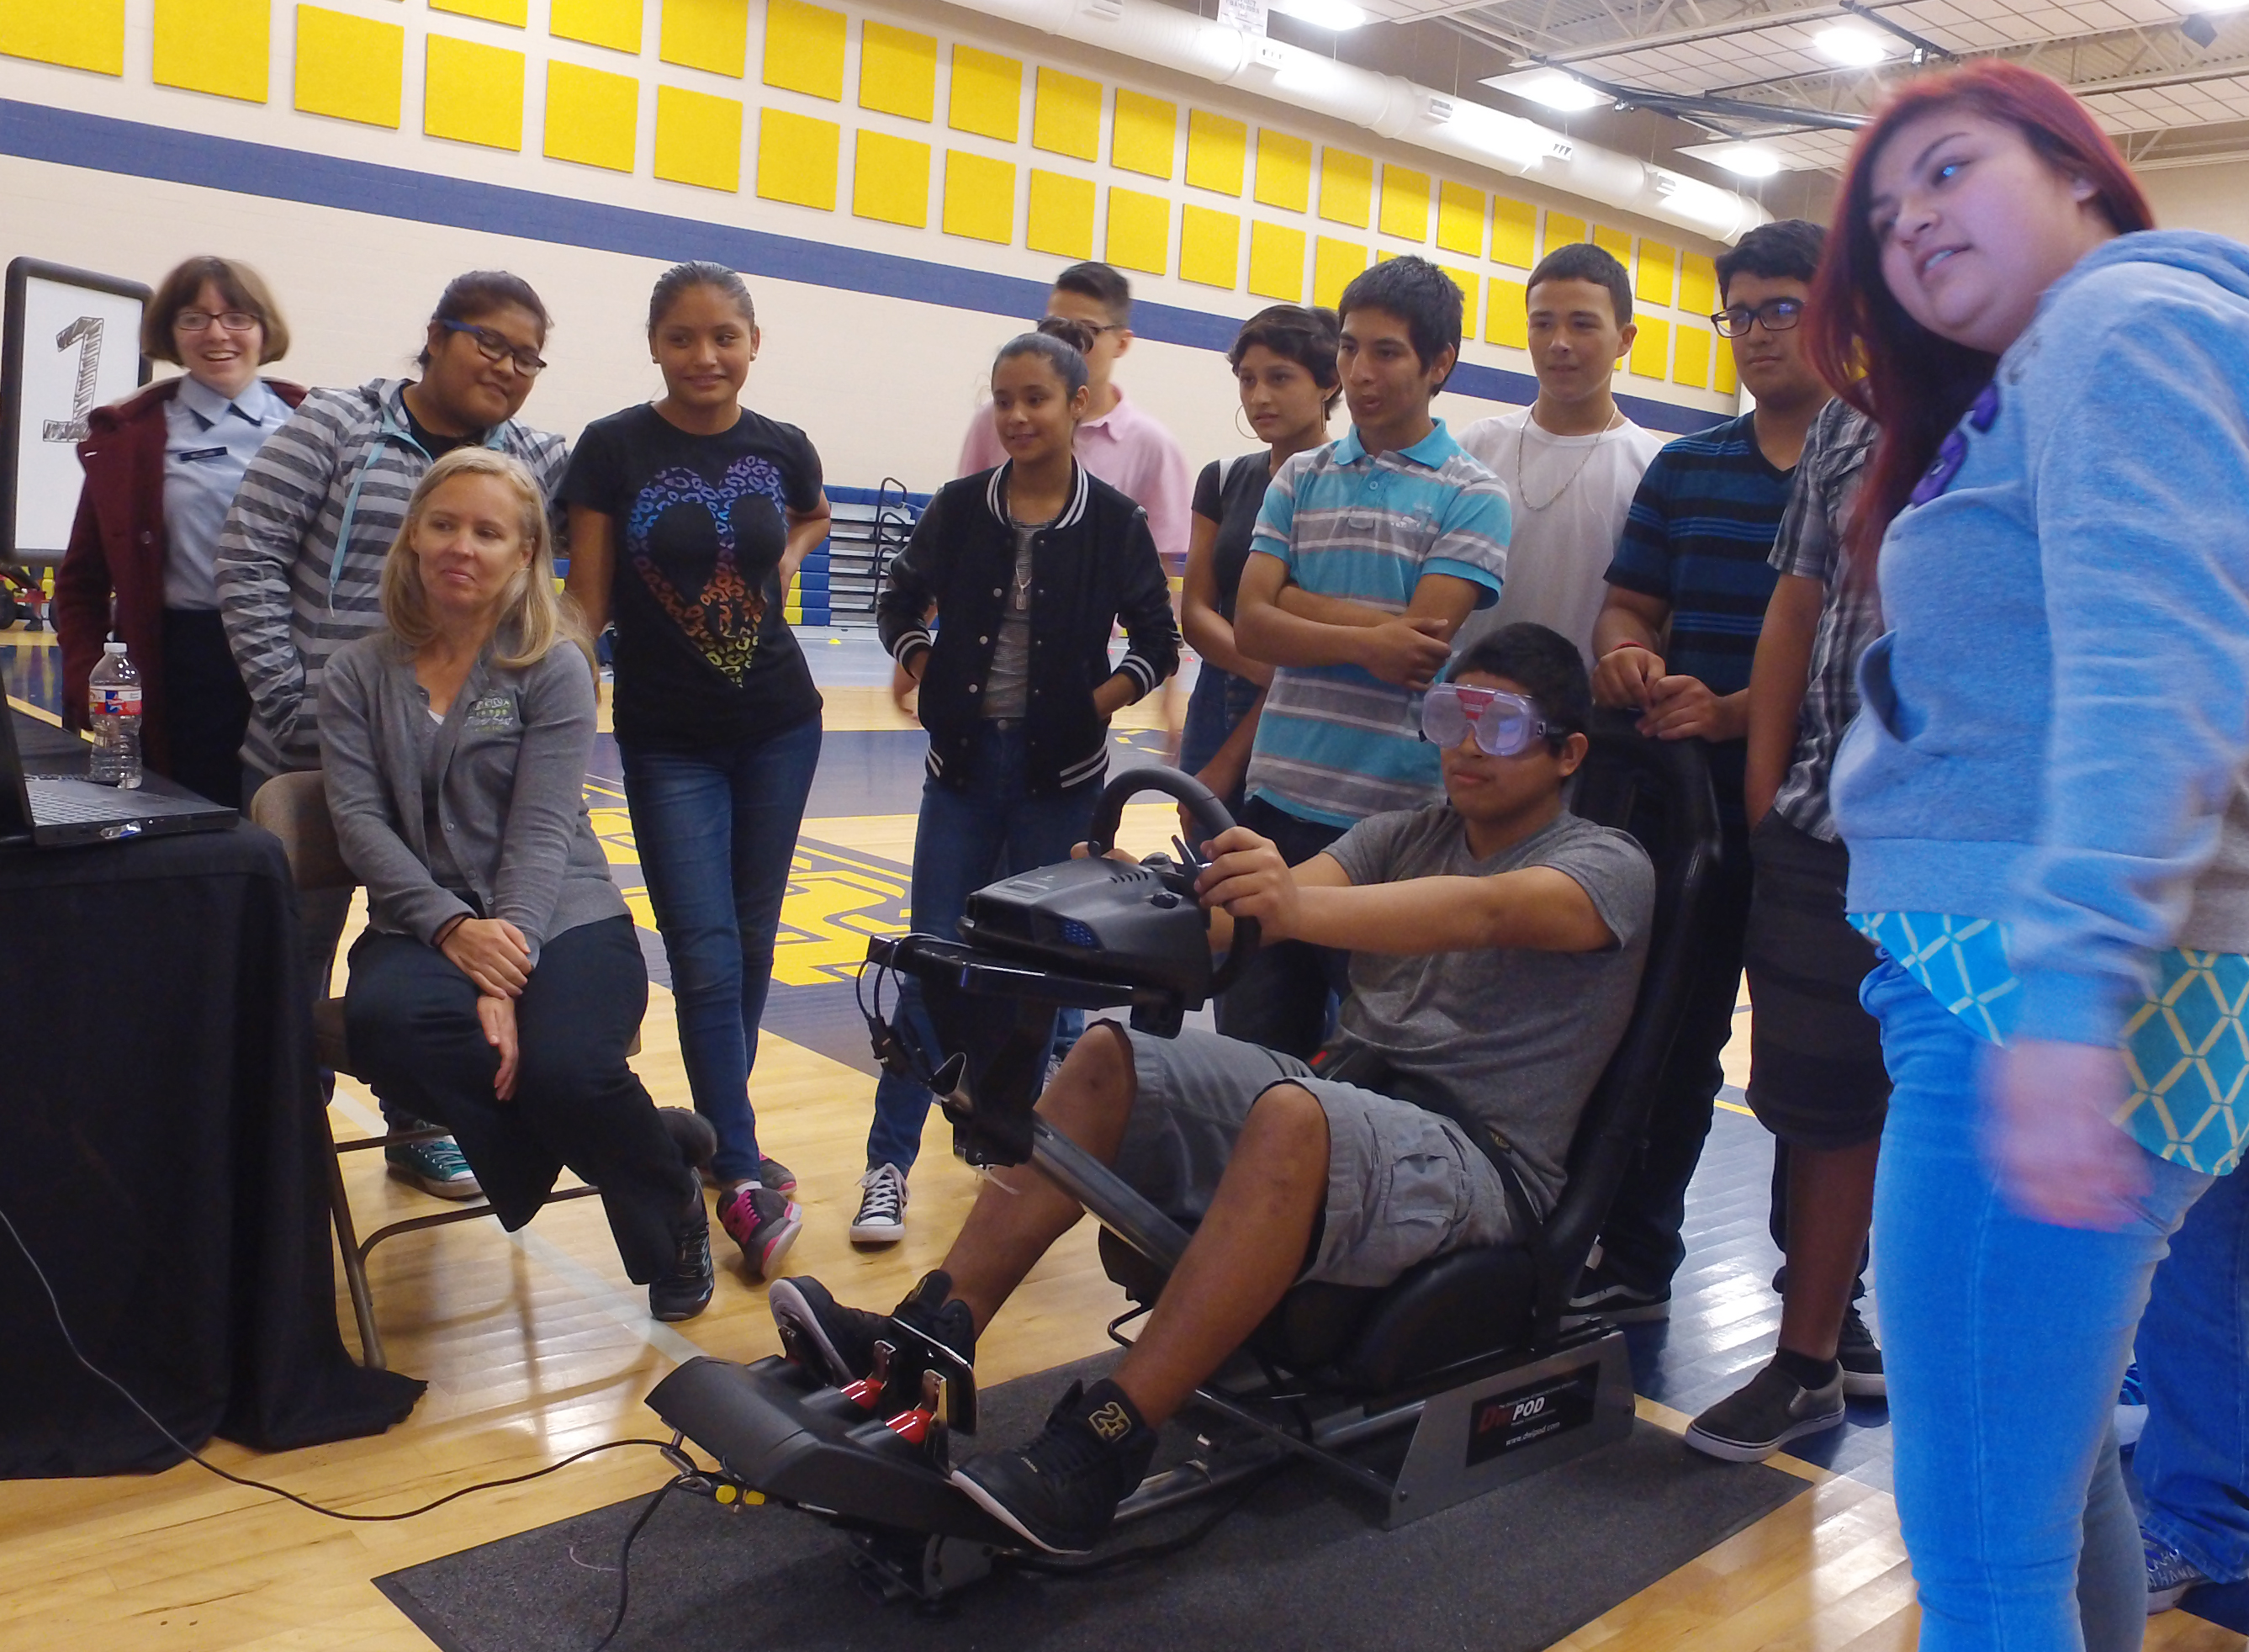 Teens in the Driver Seat event teaches students the importance of safe driving